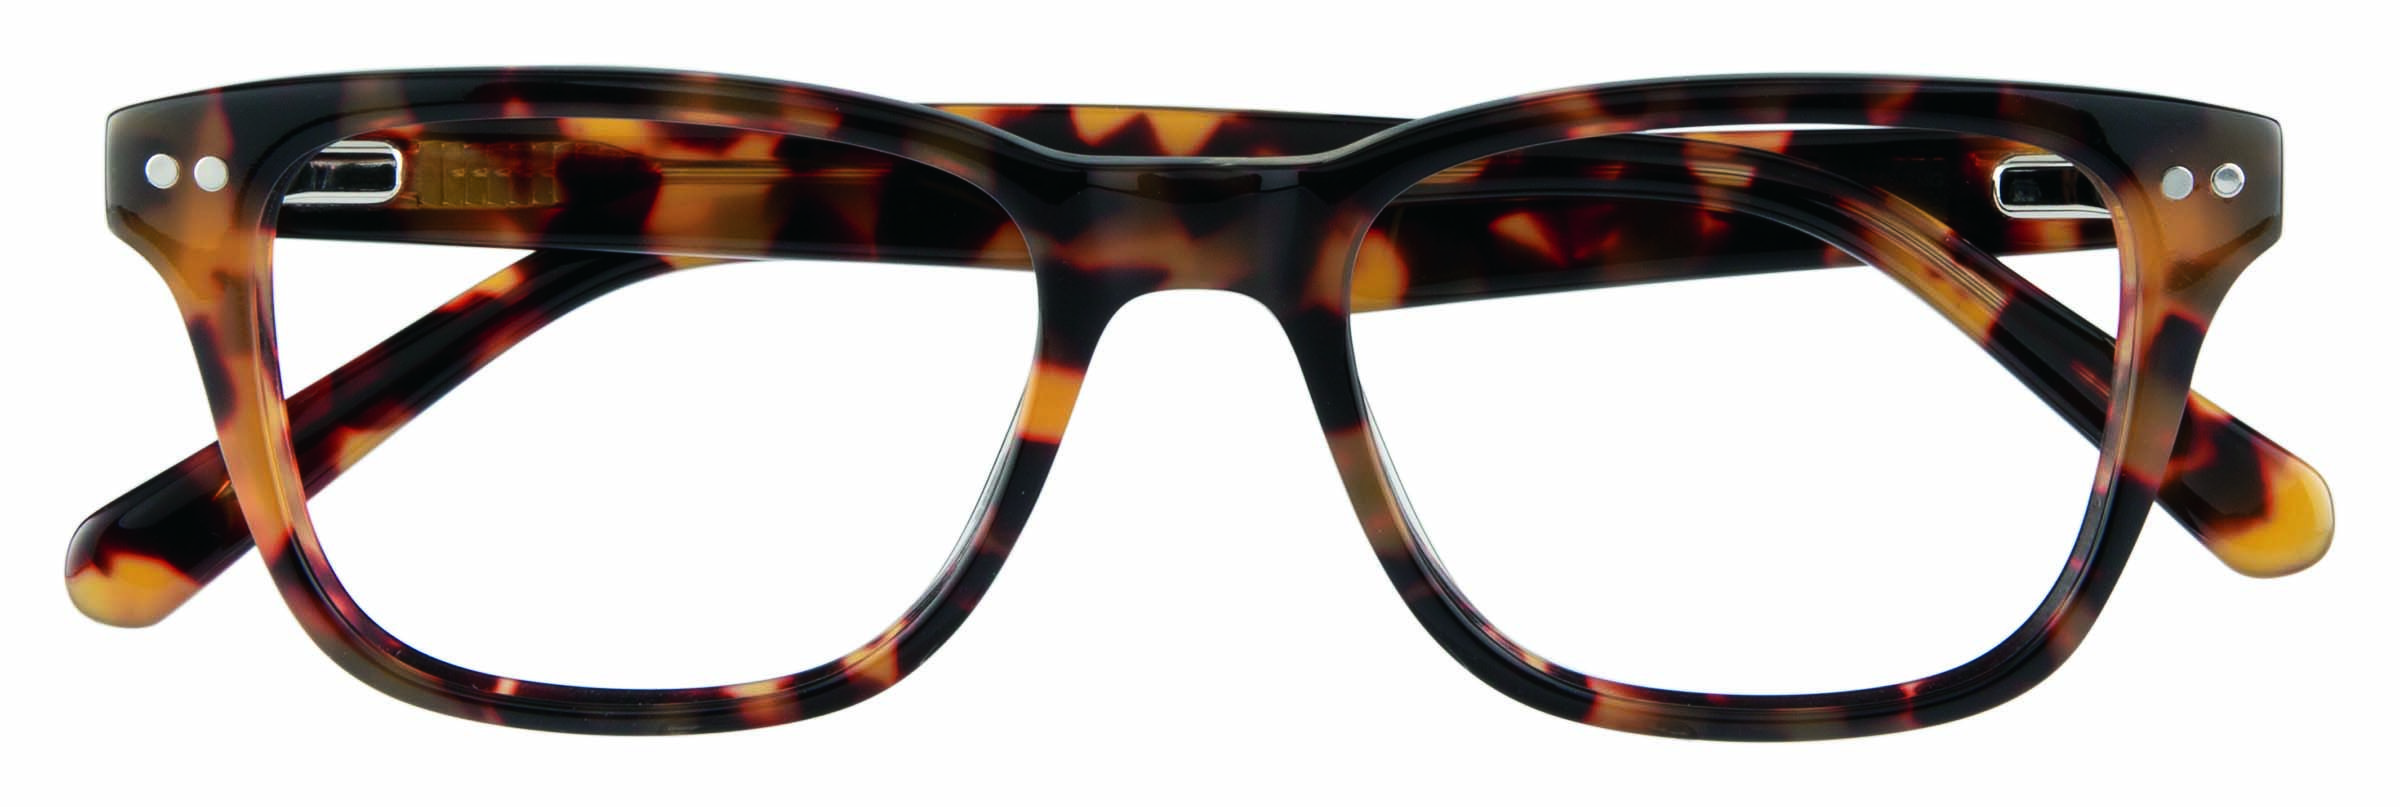 c0423b8a79 Kate Young for Tura Kids Eyewear - optical frame K900 tokyo tortoise plus 3  other colors